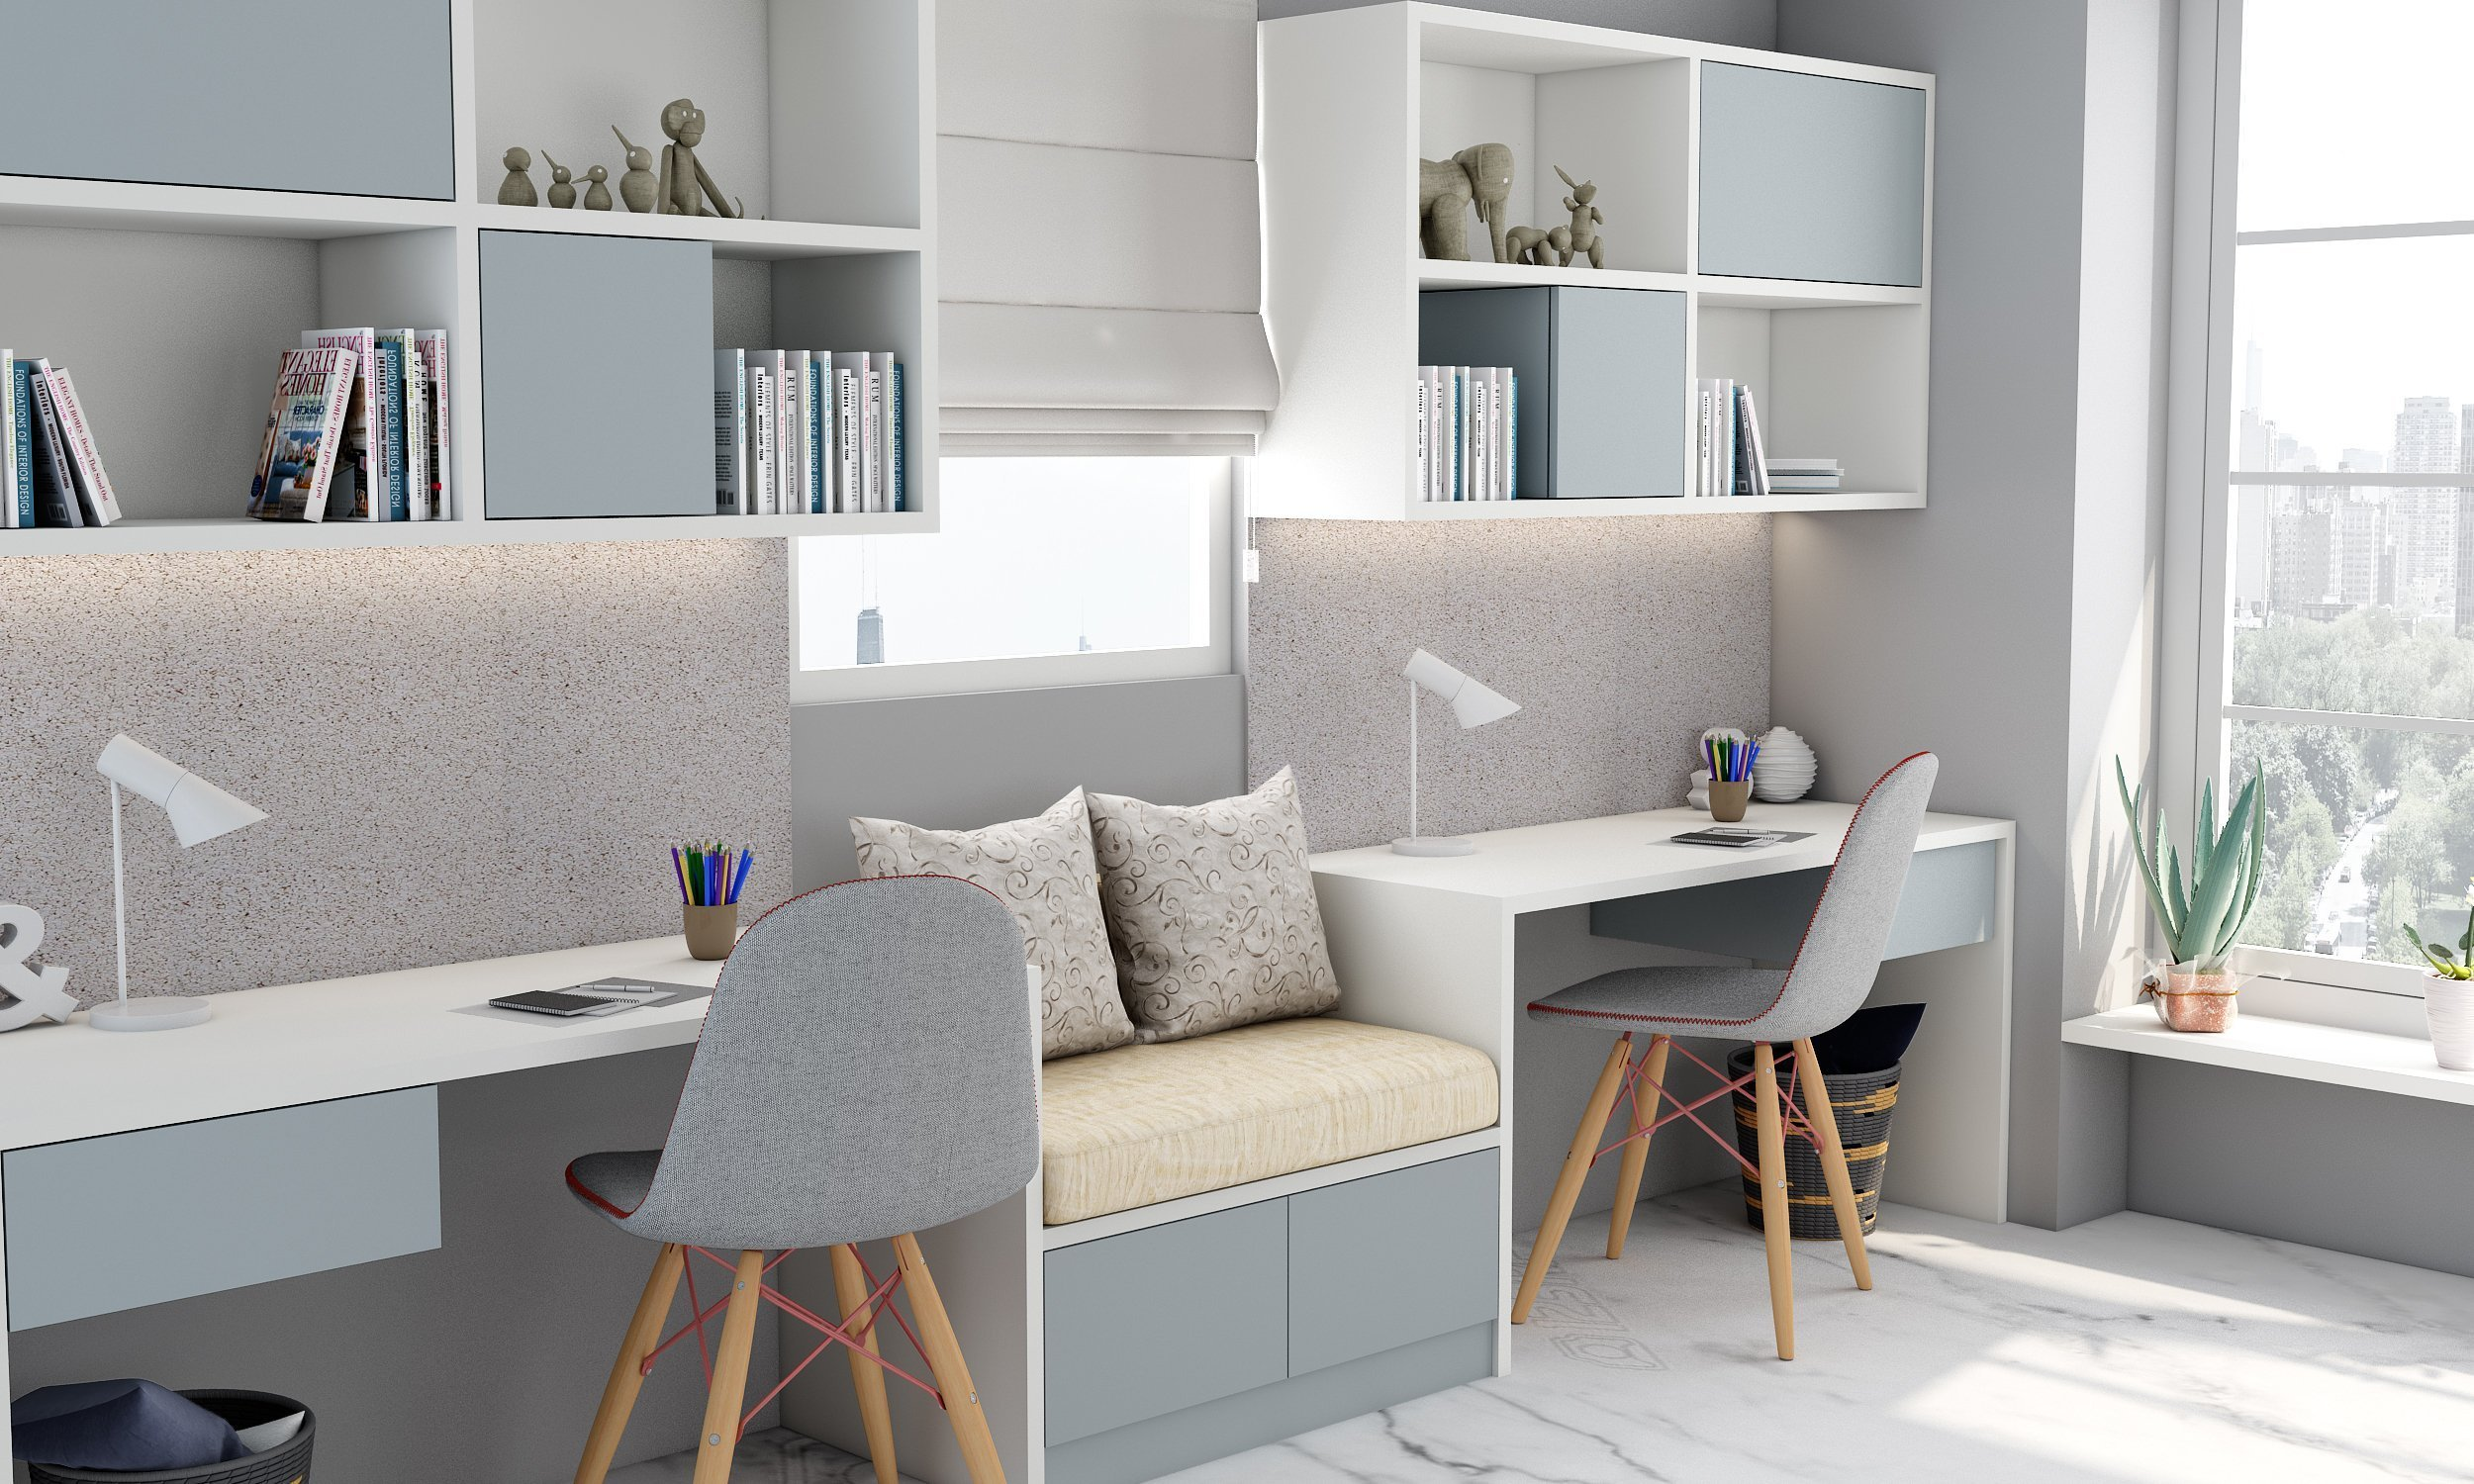 Study Finished in Light Grey and Alpine White With a Cushion Seating in Centre